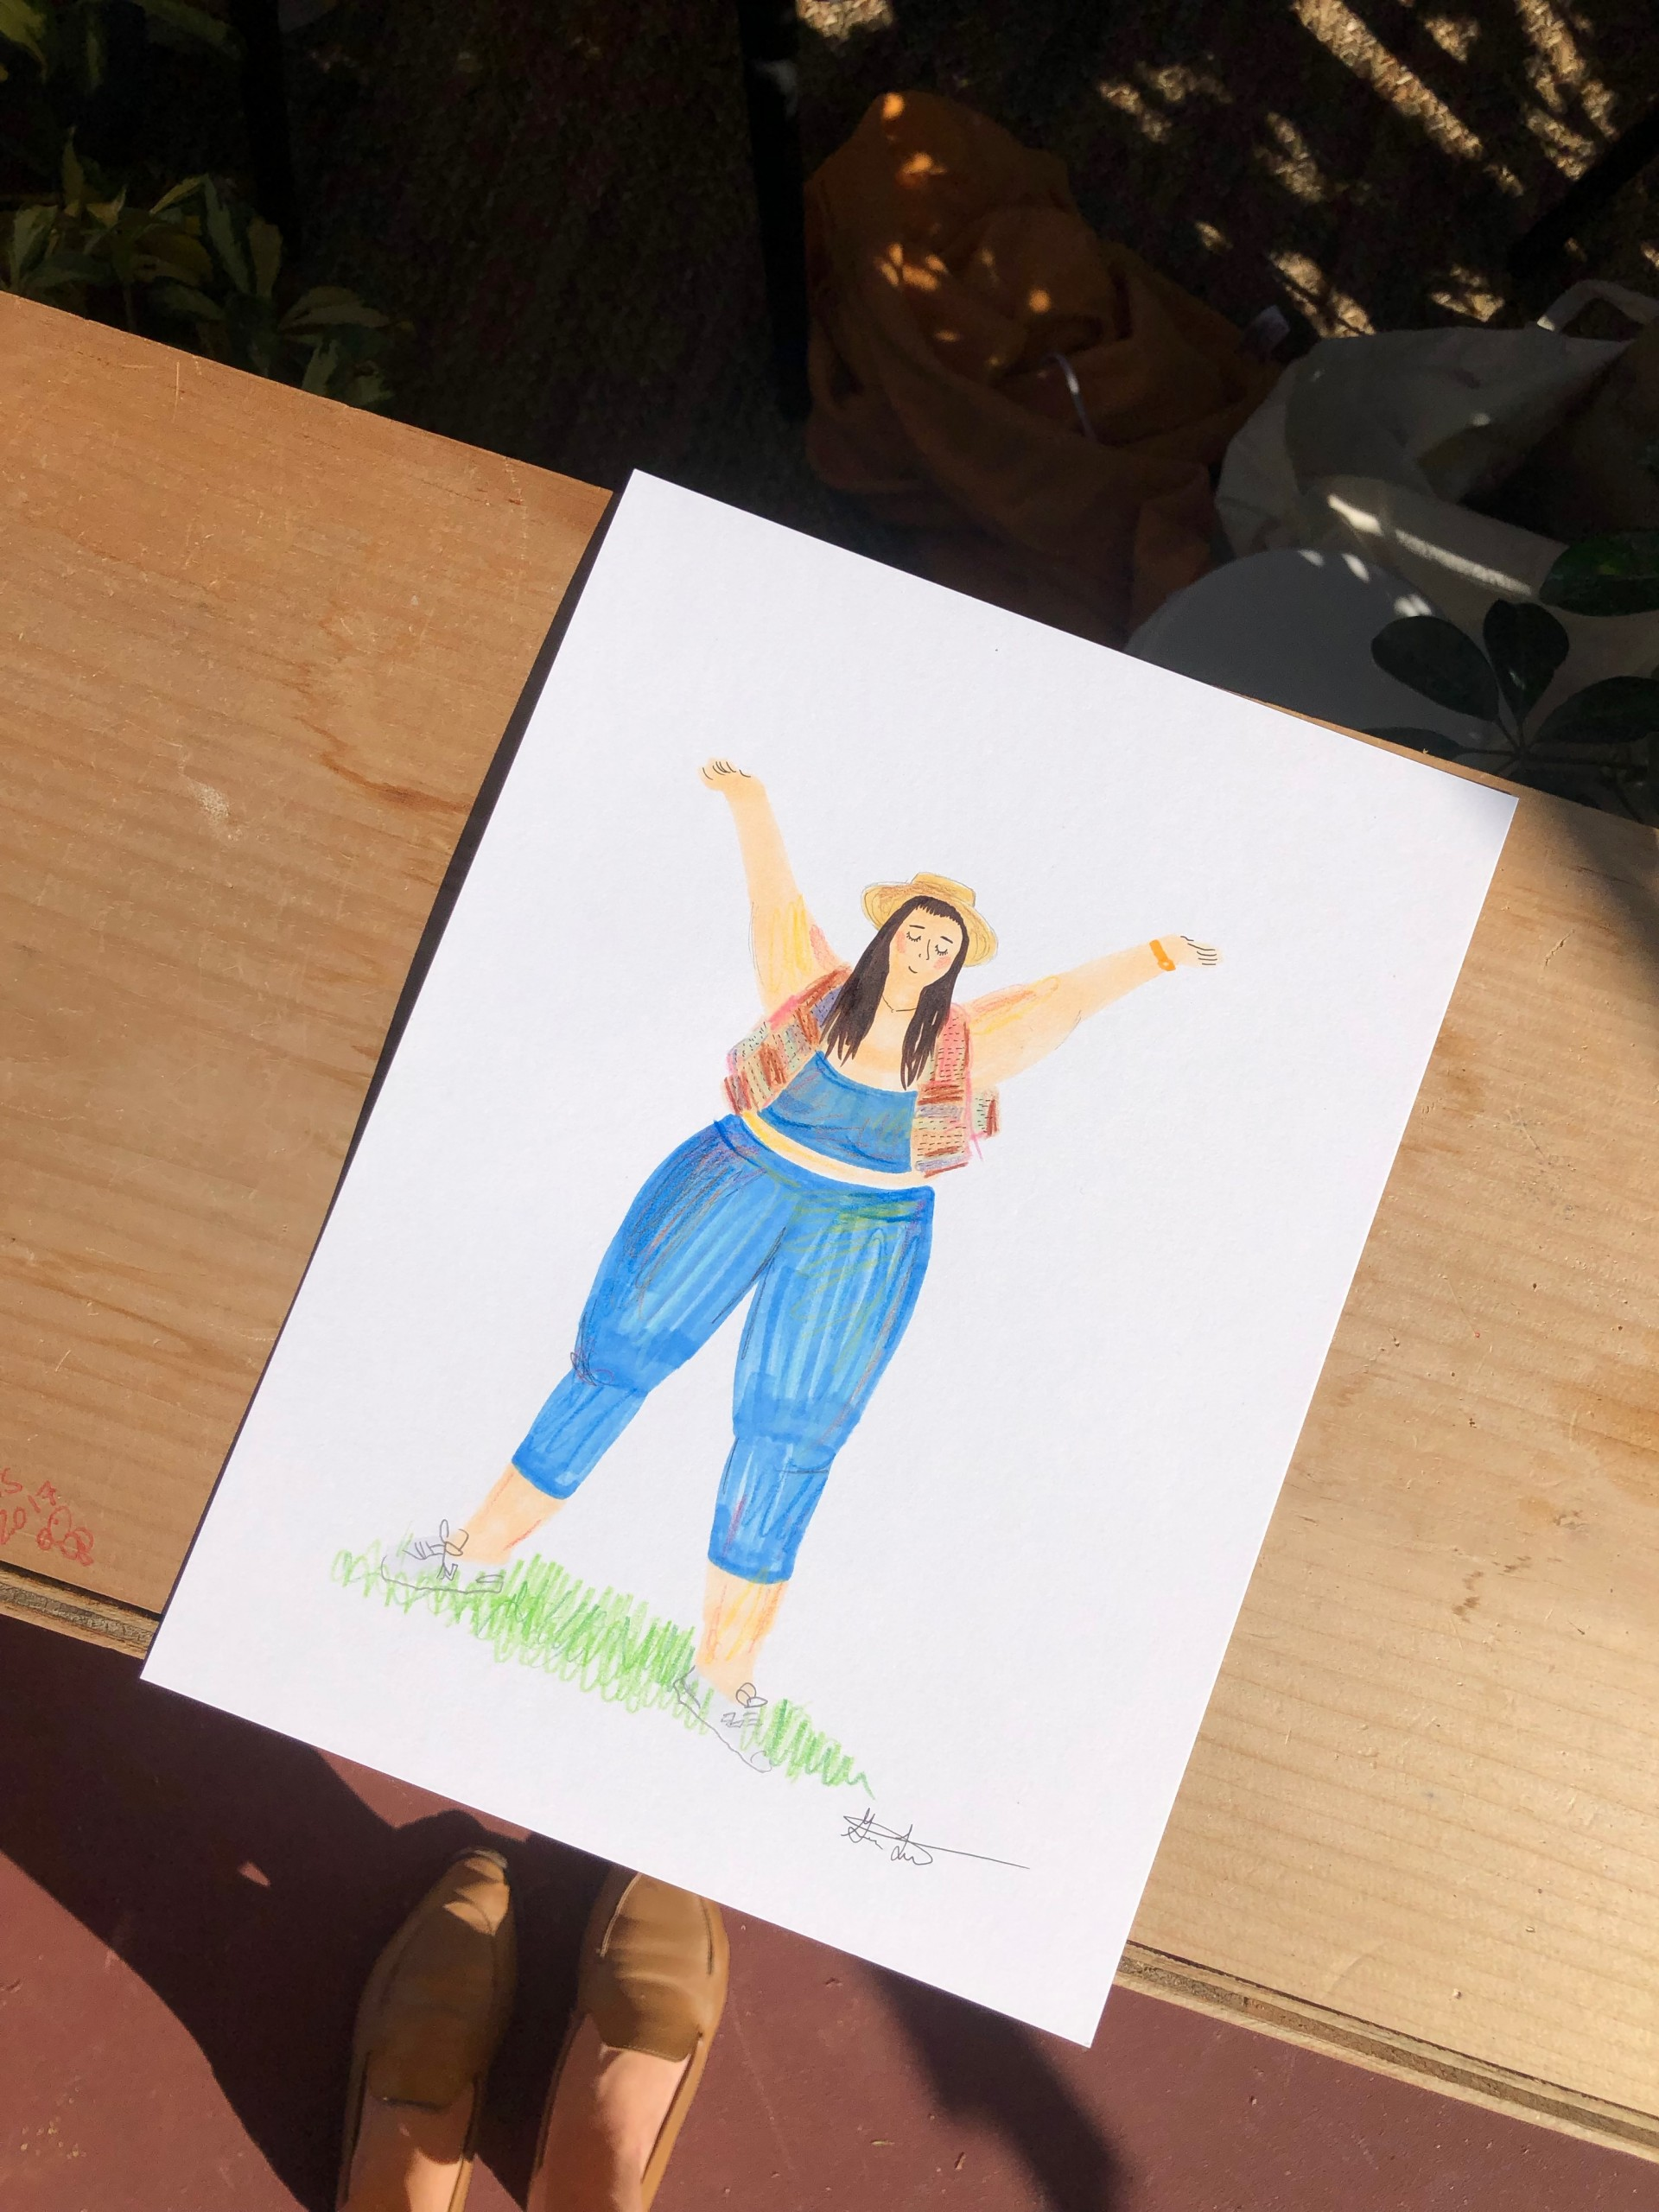 Drawing of girl in blue leggings and blue sports bra with hands above head.